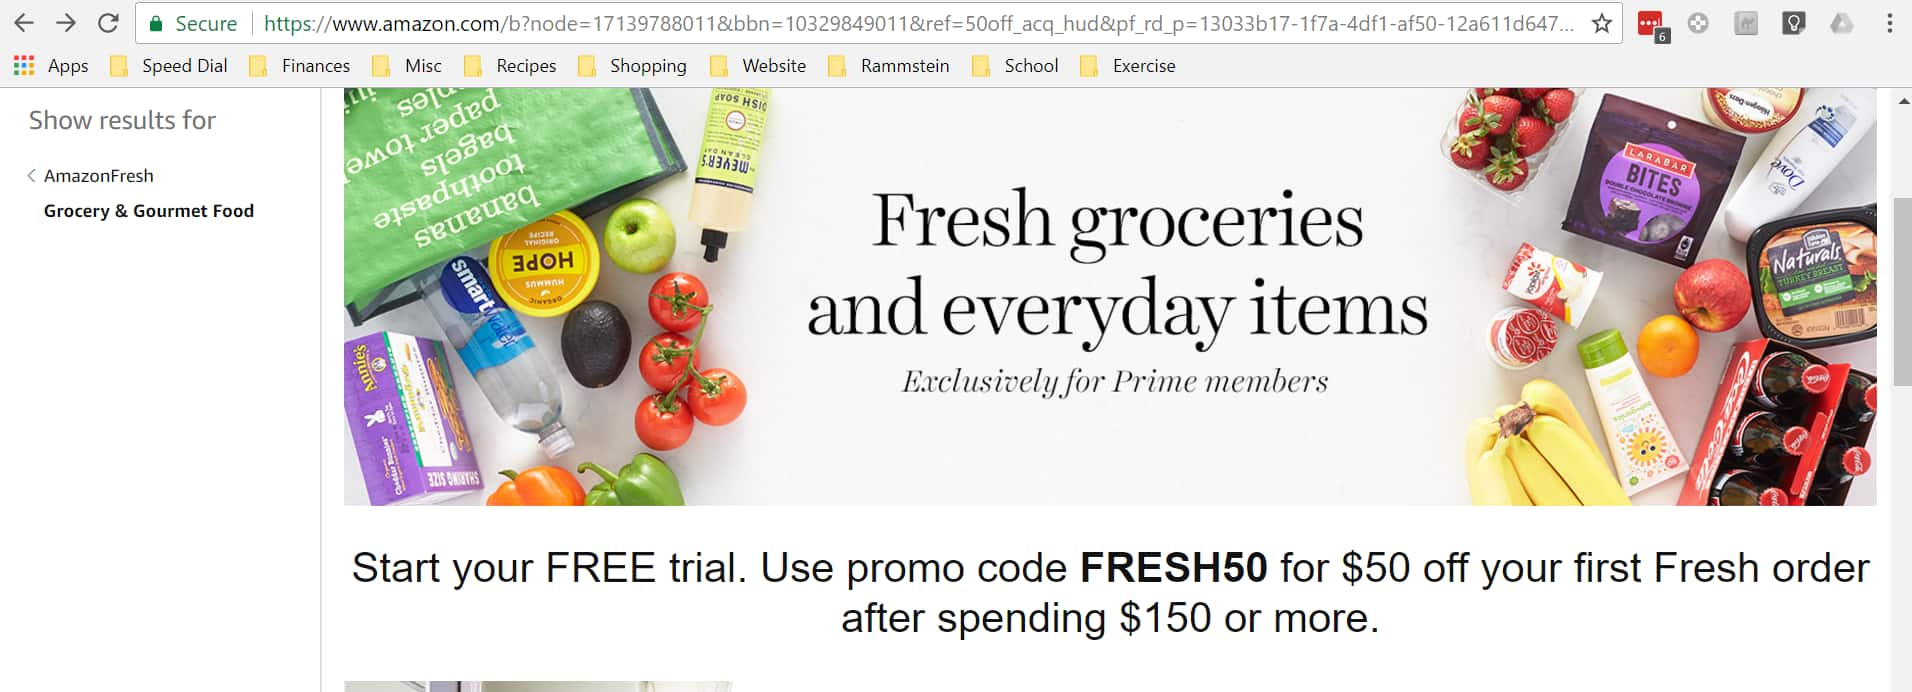 AmazonFresh - $50 off First Fresh Delivery of $150+